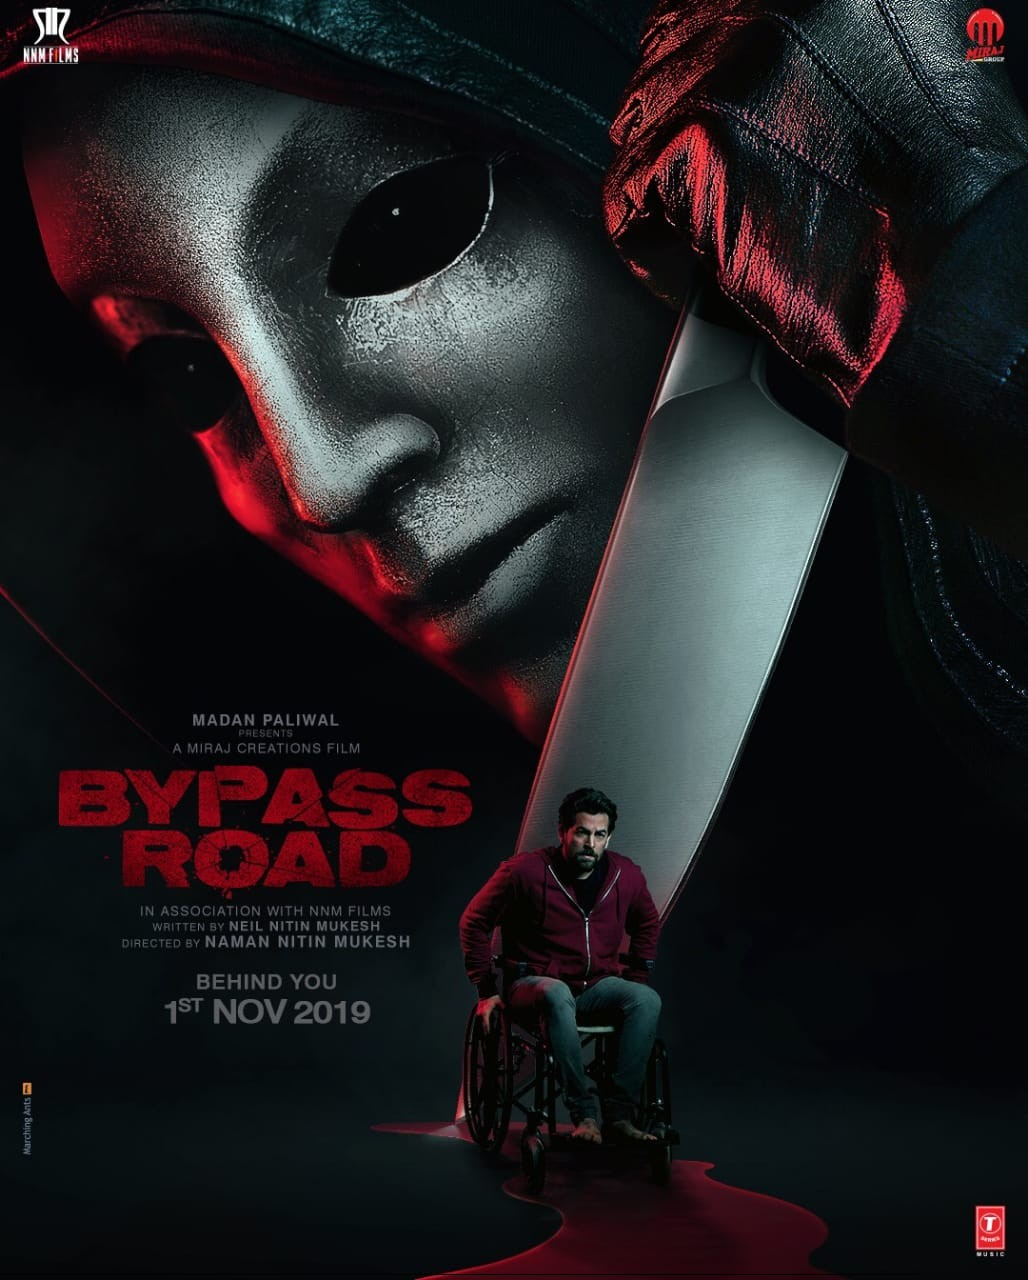 Bypass Road (2019) Hindi 720p PreDVDRip x264 AAC 1.2GB Download & Watch Online